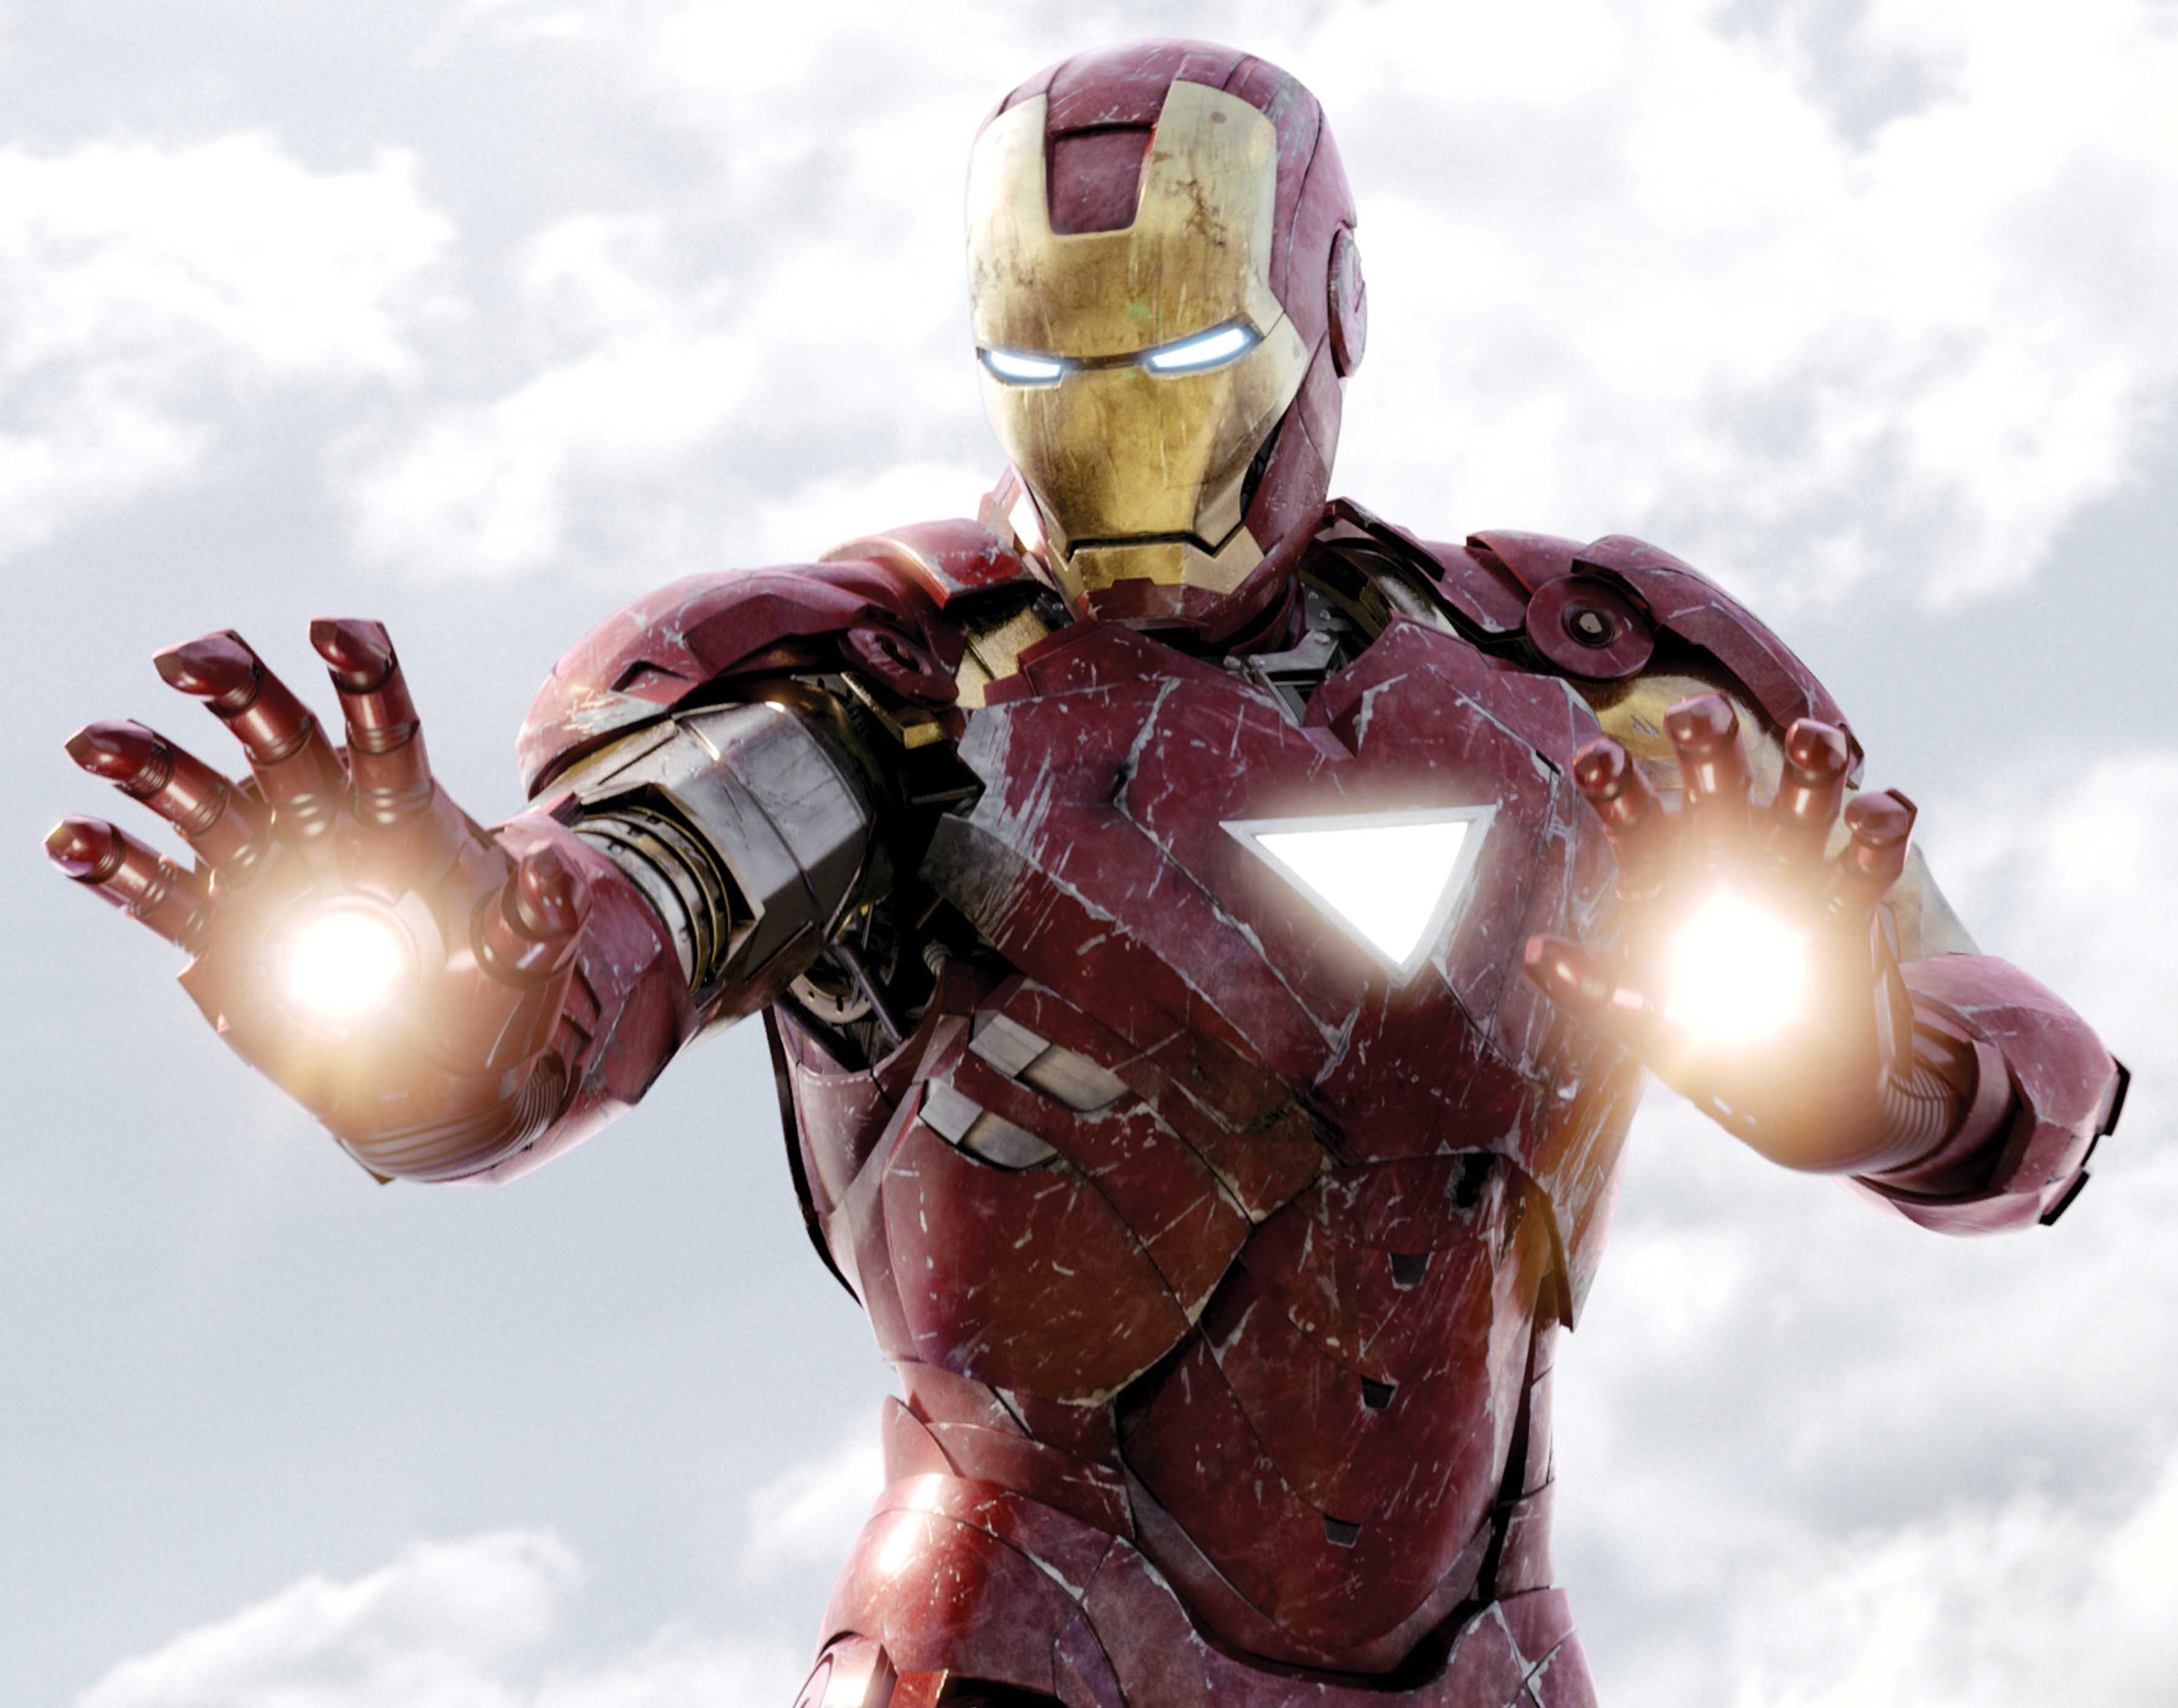 21159 download wallpaper Cinema, Iron Man screensavers and pictures for free